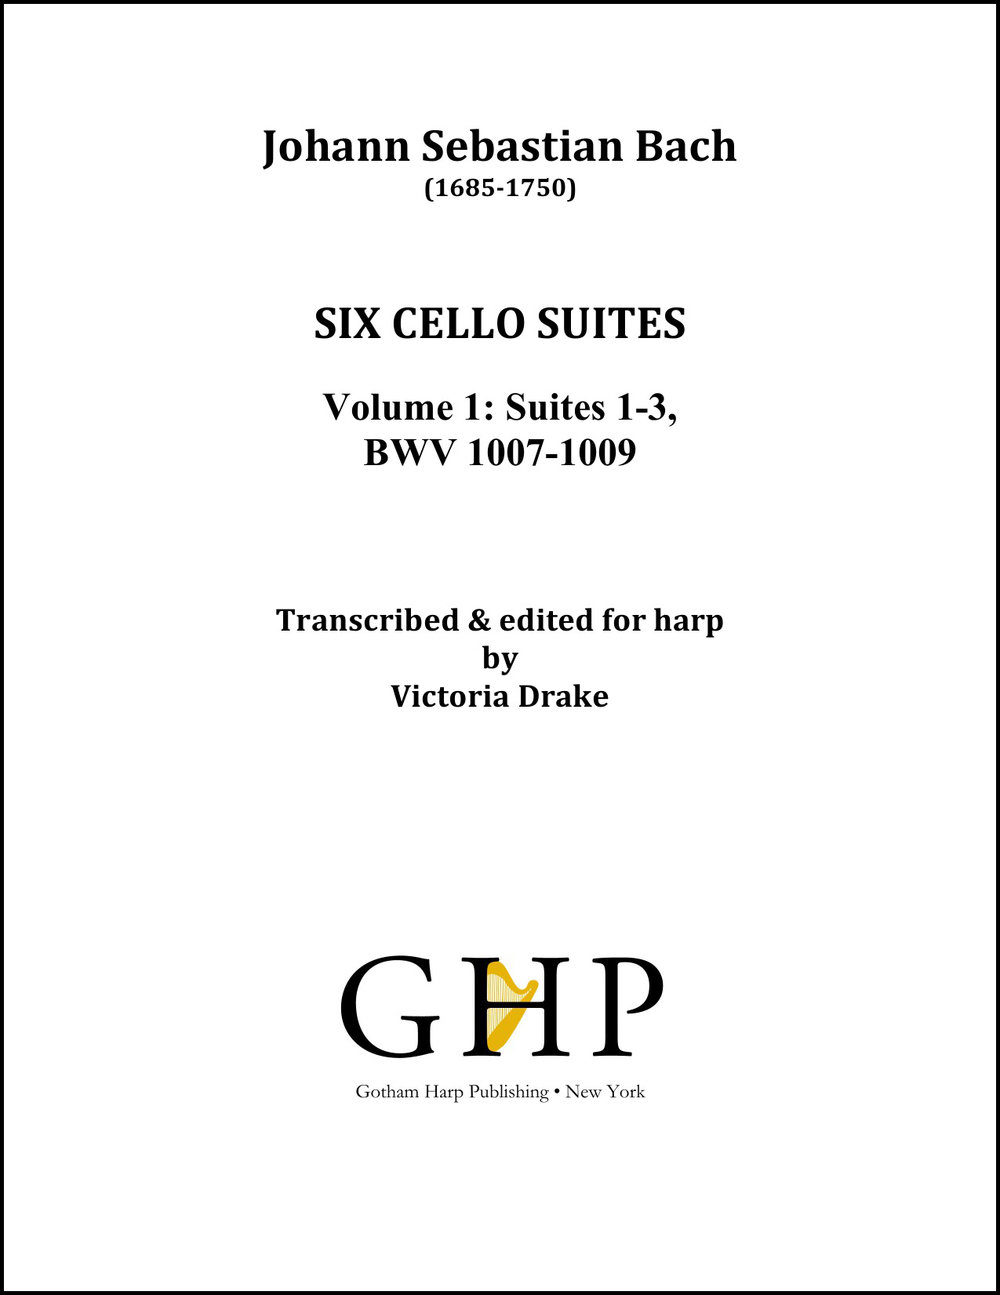 Bach Suites Sheet Music - All 6 of the Bach Cello Suites transcriptions for harp are available in 2 volumes from Gotham Harp Publishing. Click on image for purchase information.